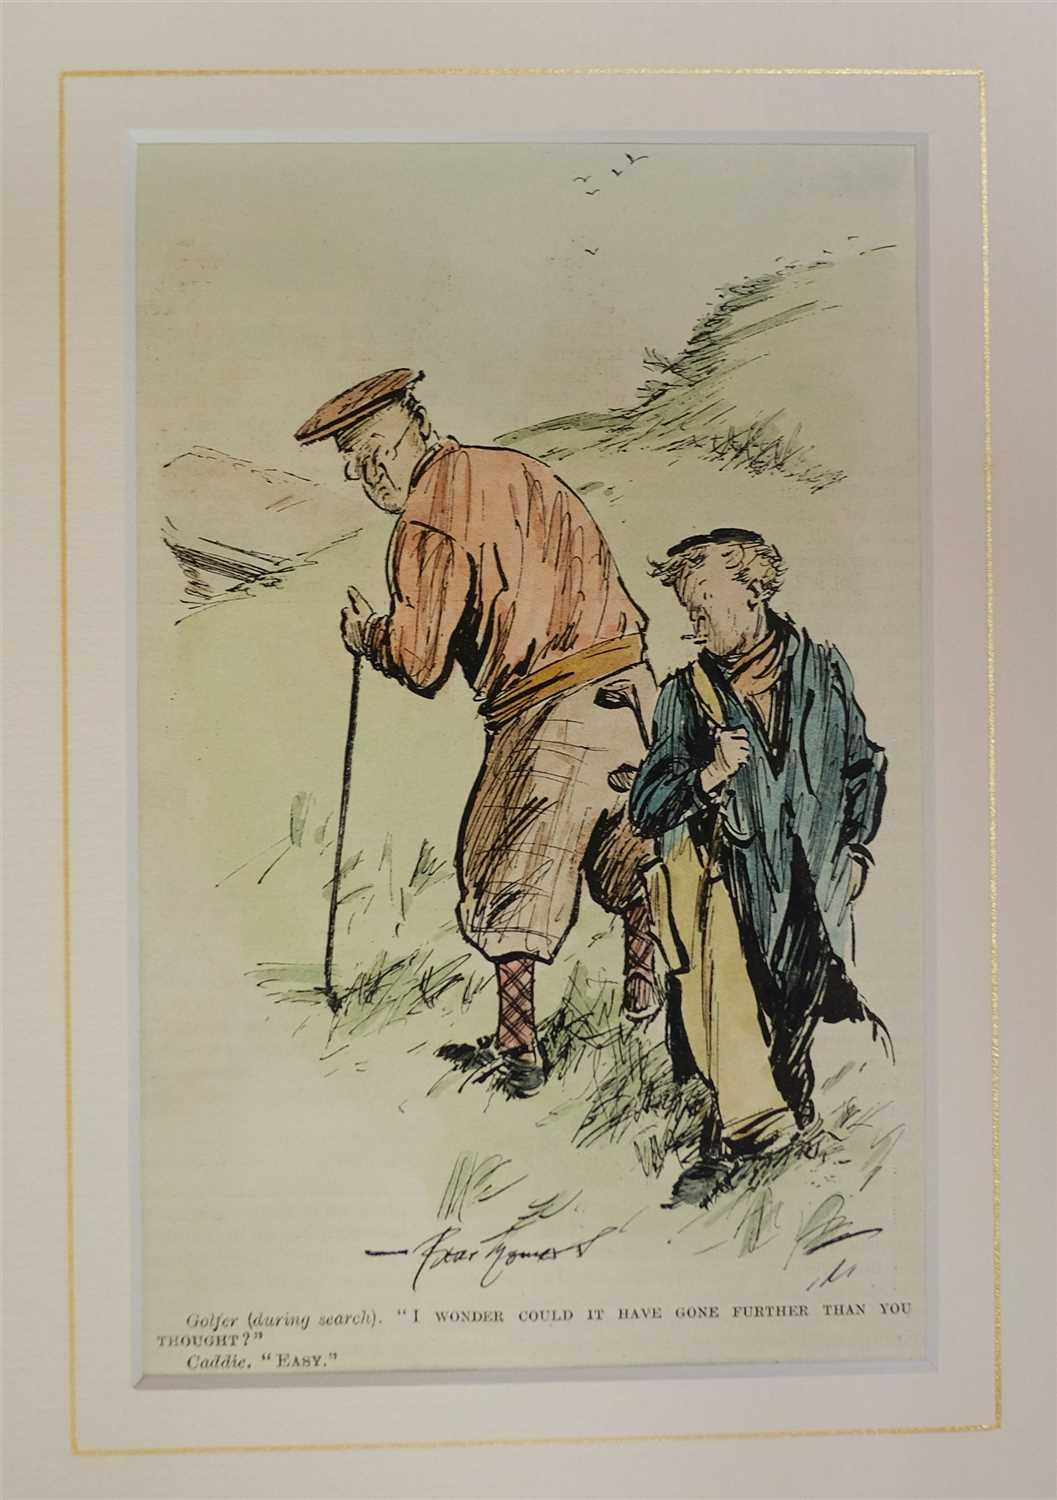 Lot 44-Punch cartoons. A large collection of approximately 1250 cartoons, mostly early 20th century